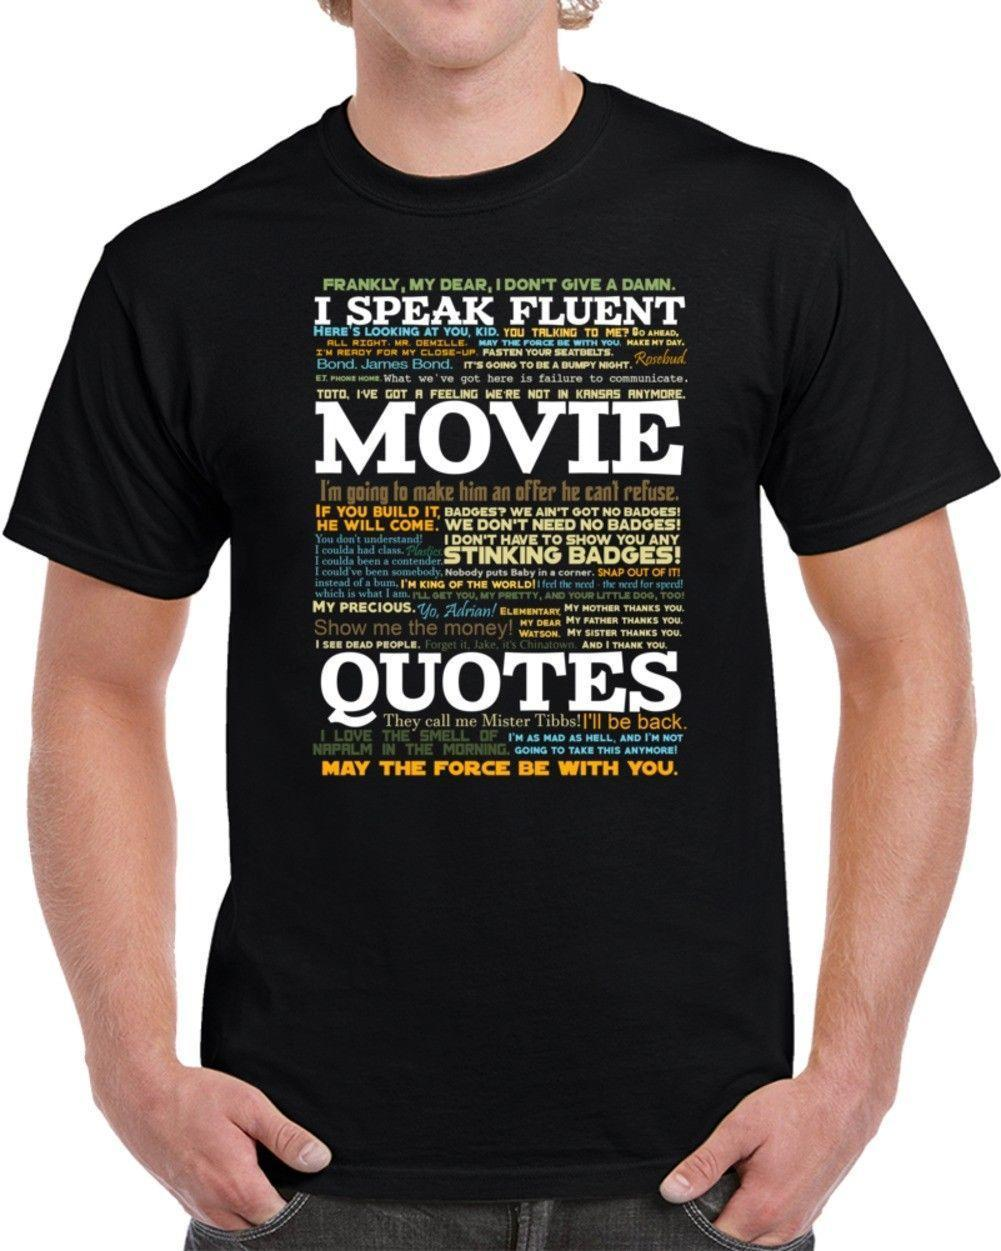 aea6a7b5c20 I Speak Fluent Movie Quotes Funny Cool Parody Fan T Shirt And T Shirts As Tee  Shirts From Linnan002